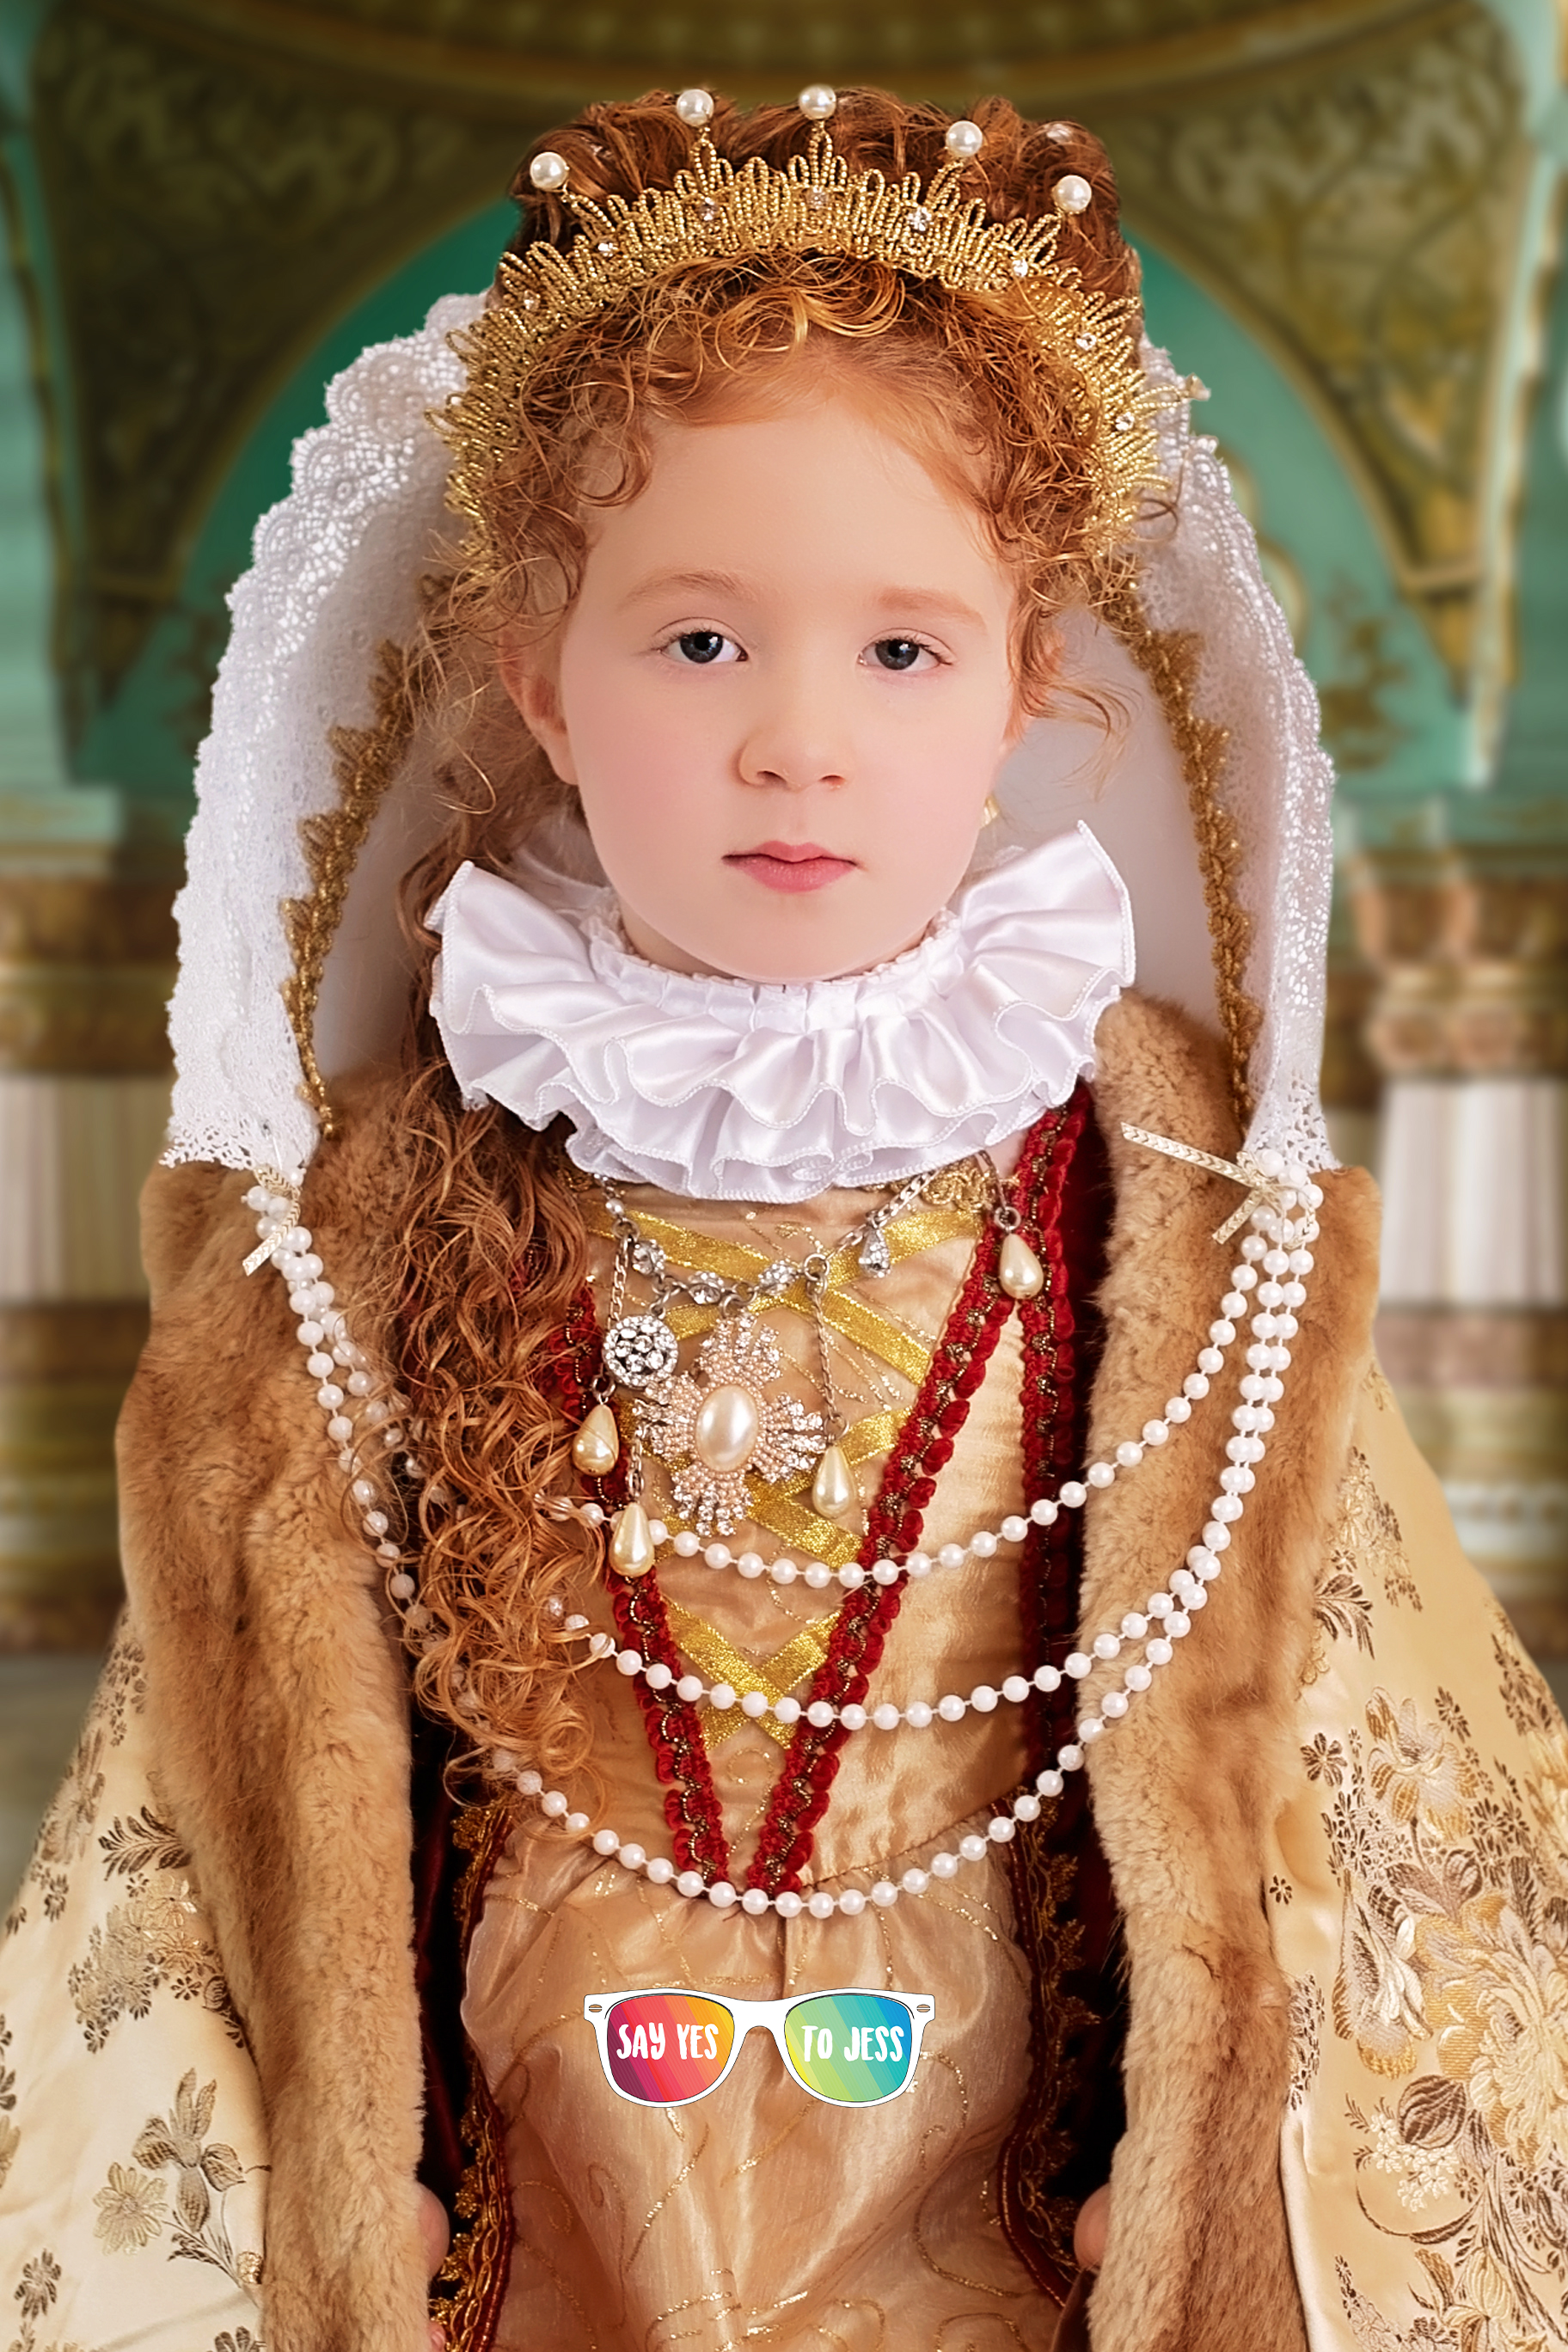 Say yes to Jess photographs Little girl dresses as Elizabeth I of England for International Womens Day